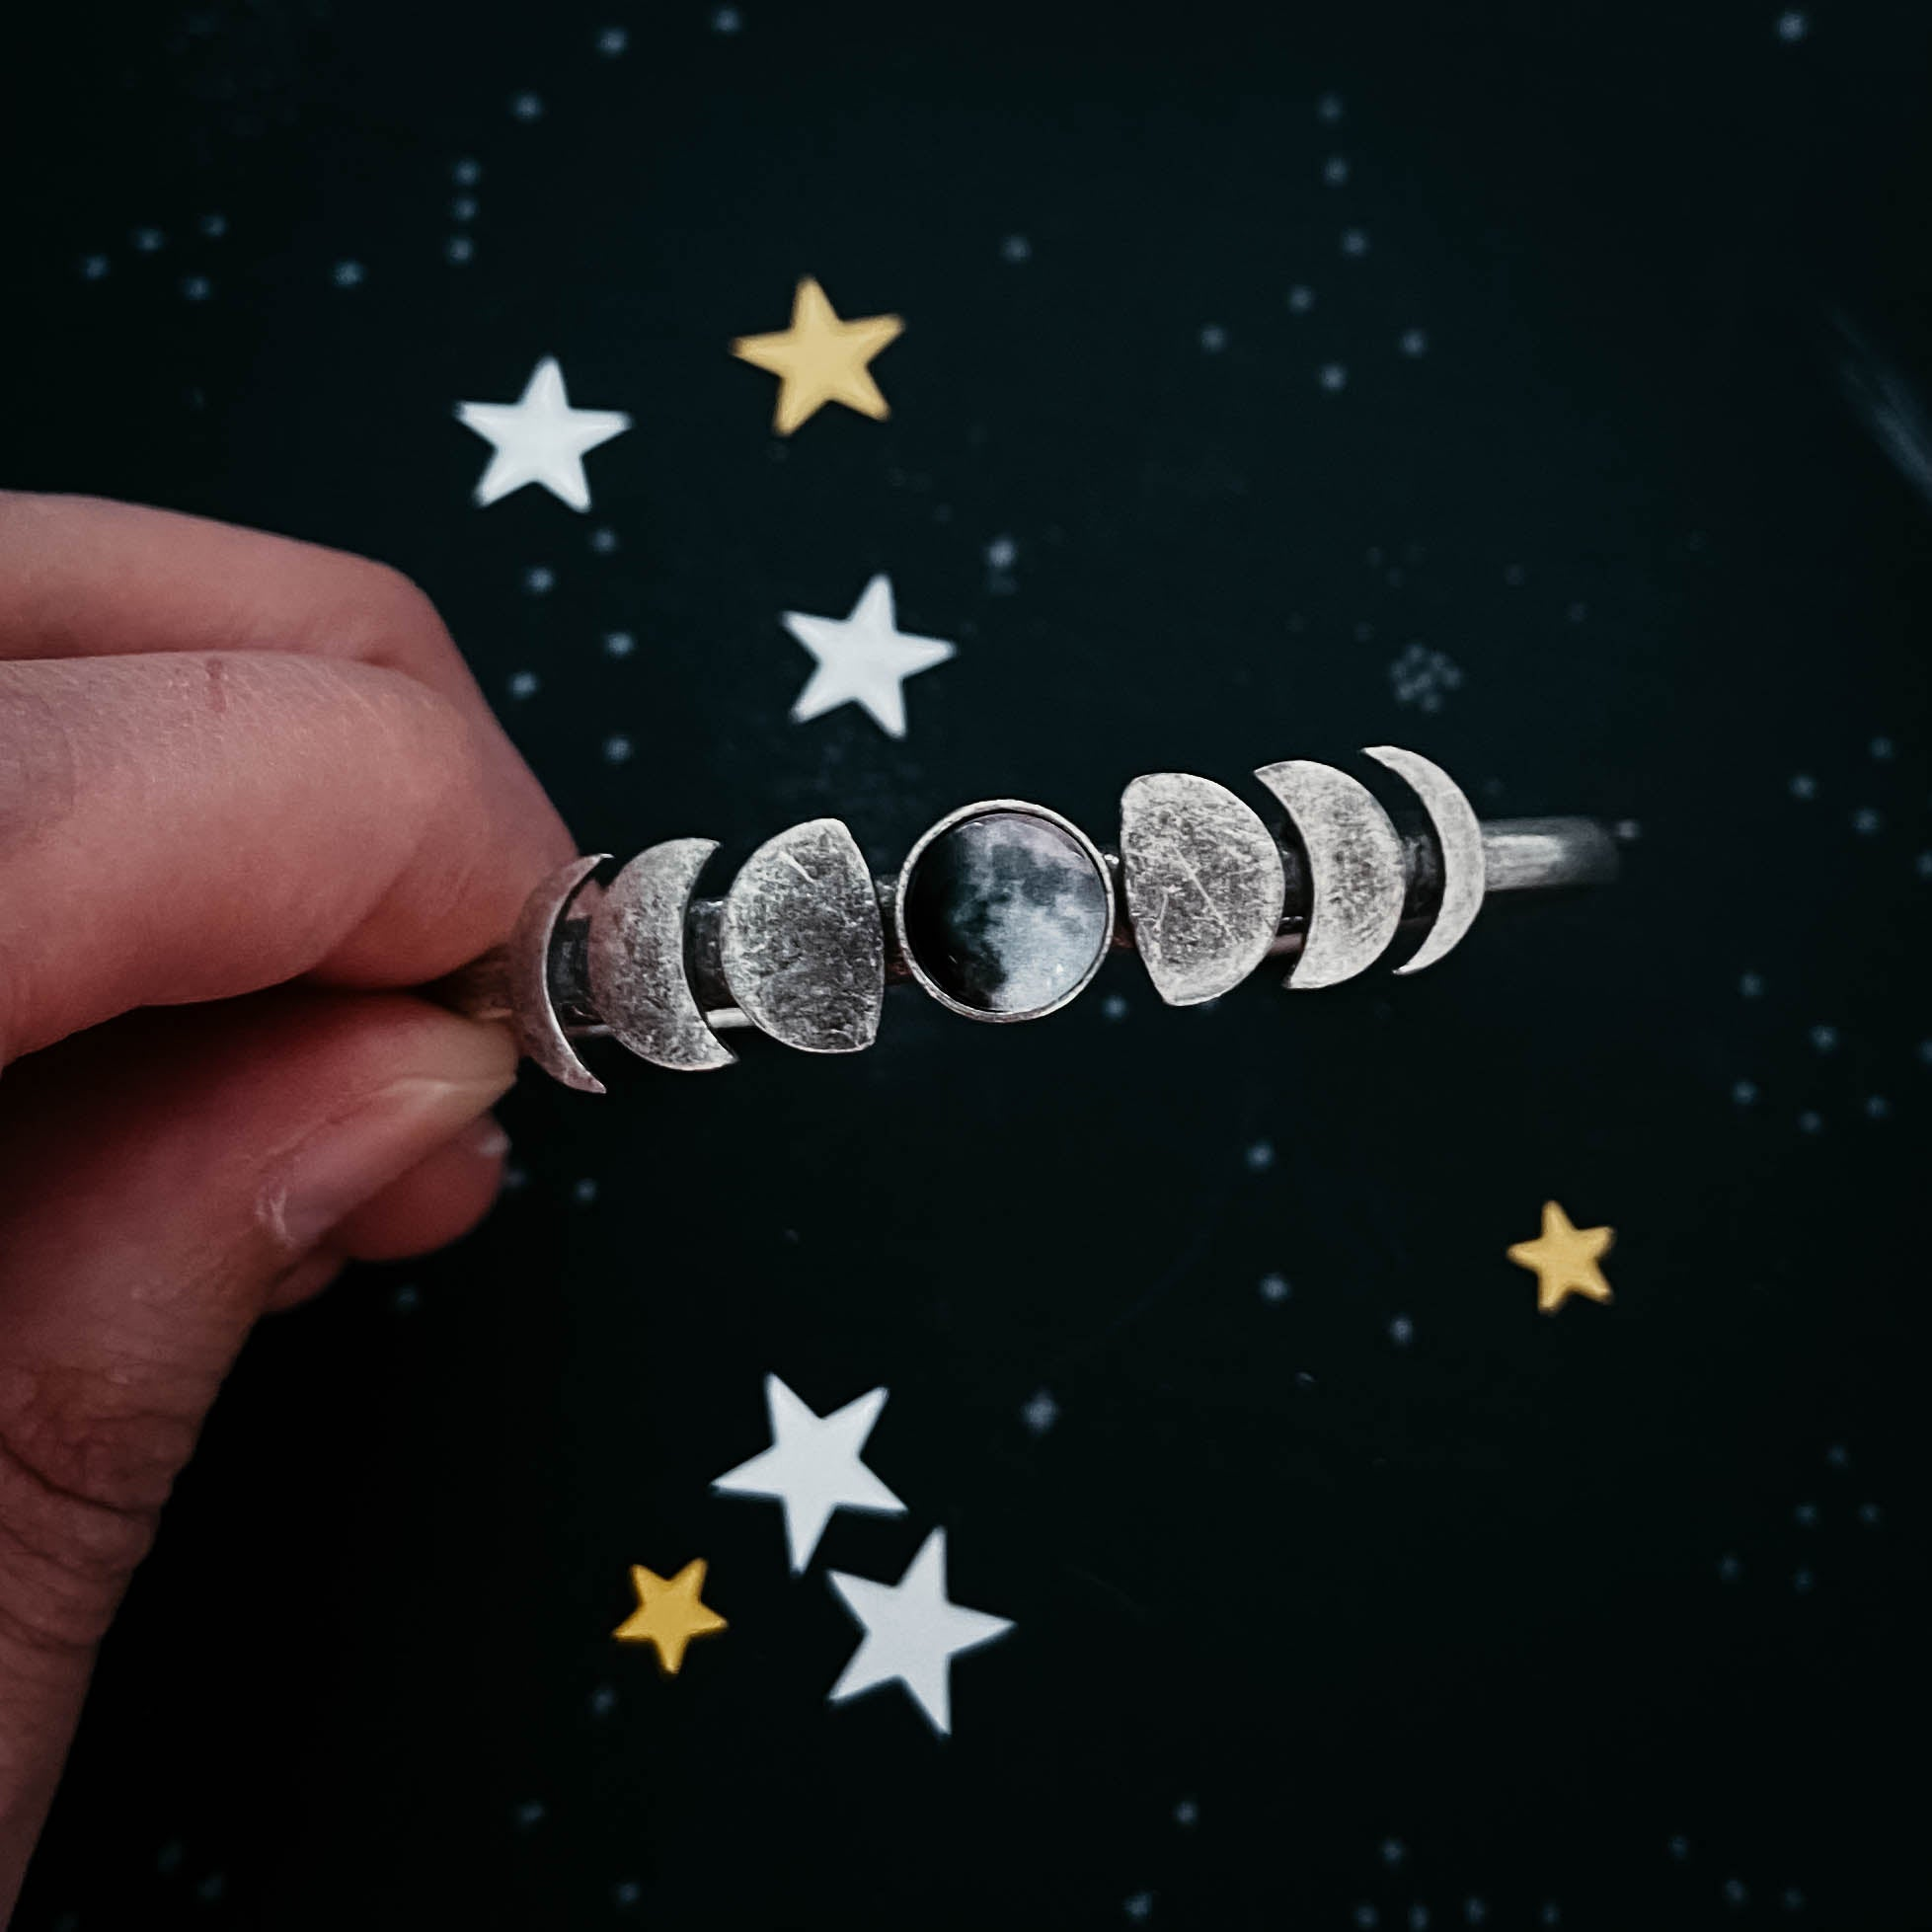 Phases of the Moon Bracelet with Custom Moon from Personal Date - Personalized Lunar Phase Jewelry, Moonglow, Yugen Tribe, Yugen Handmade